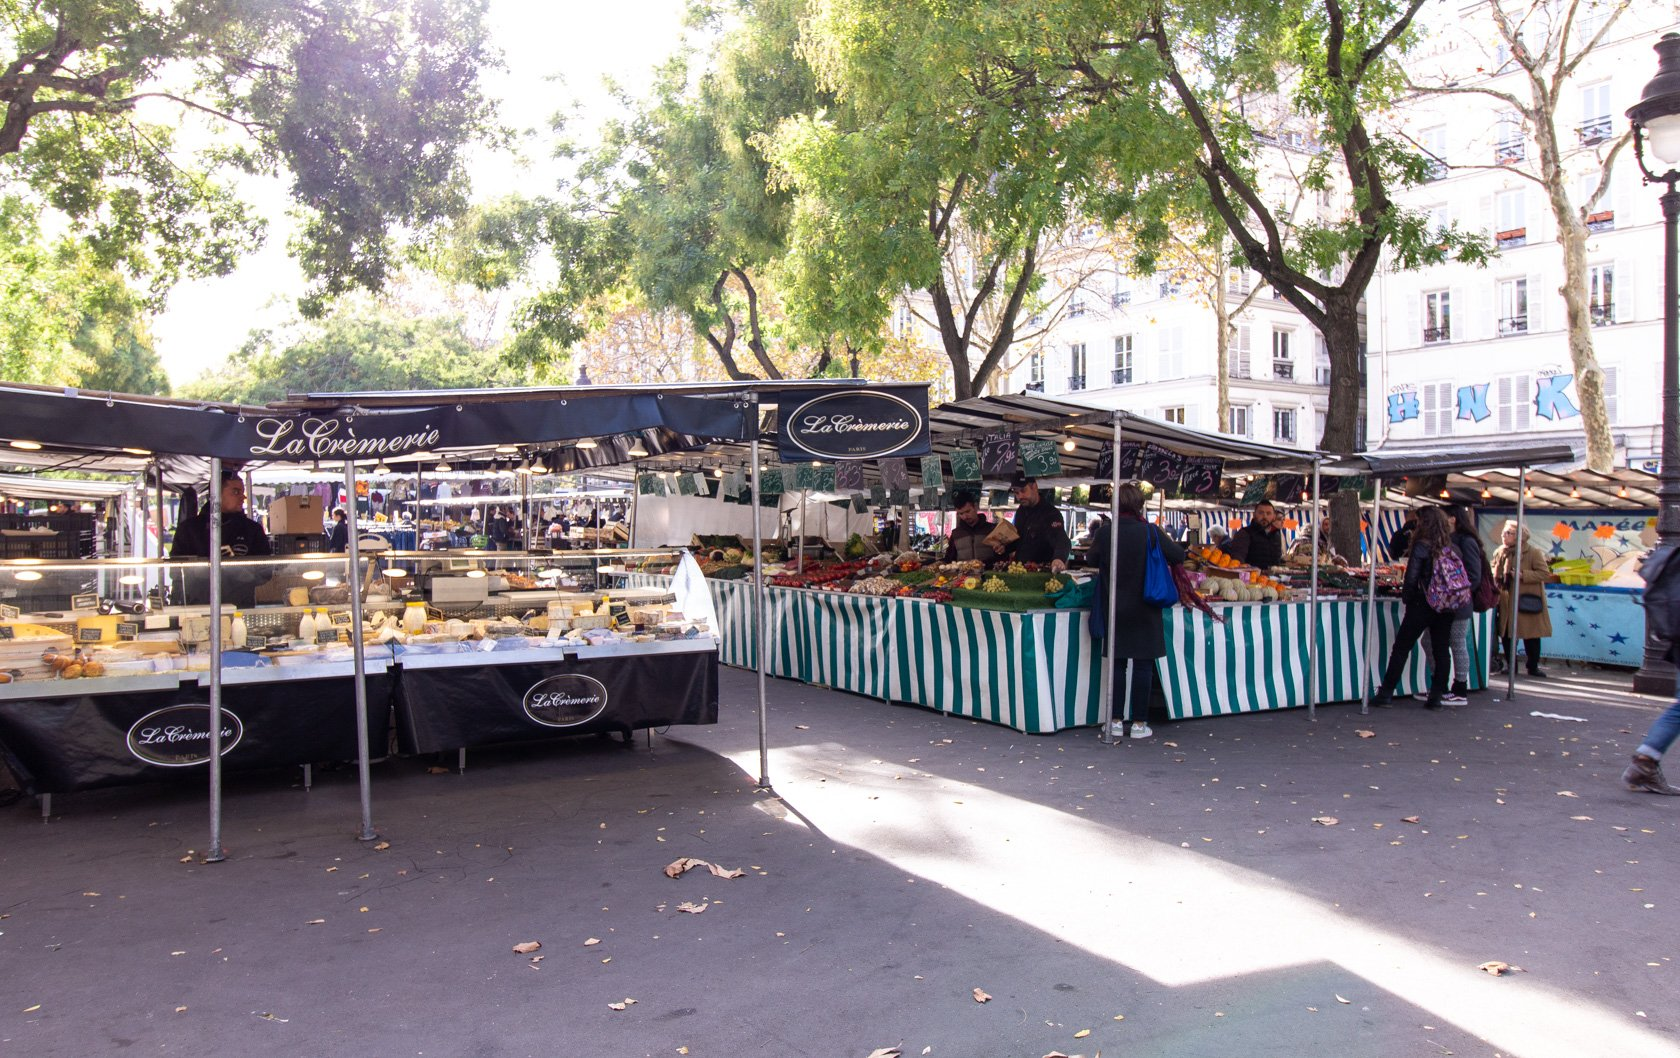 Marché Popincourt- A Local's Guide to the 11th Arrondissement